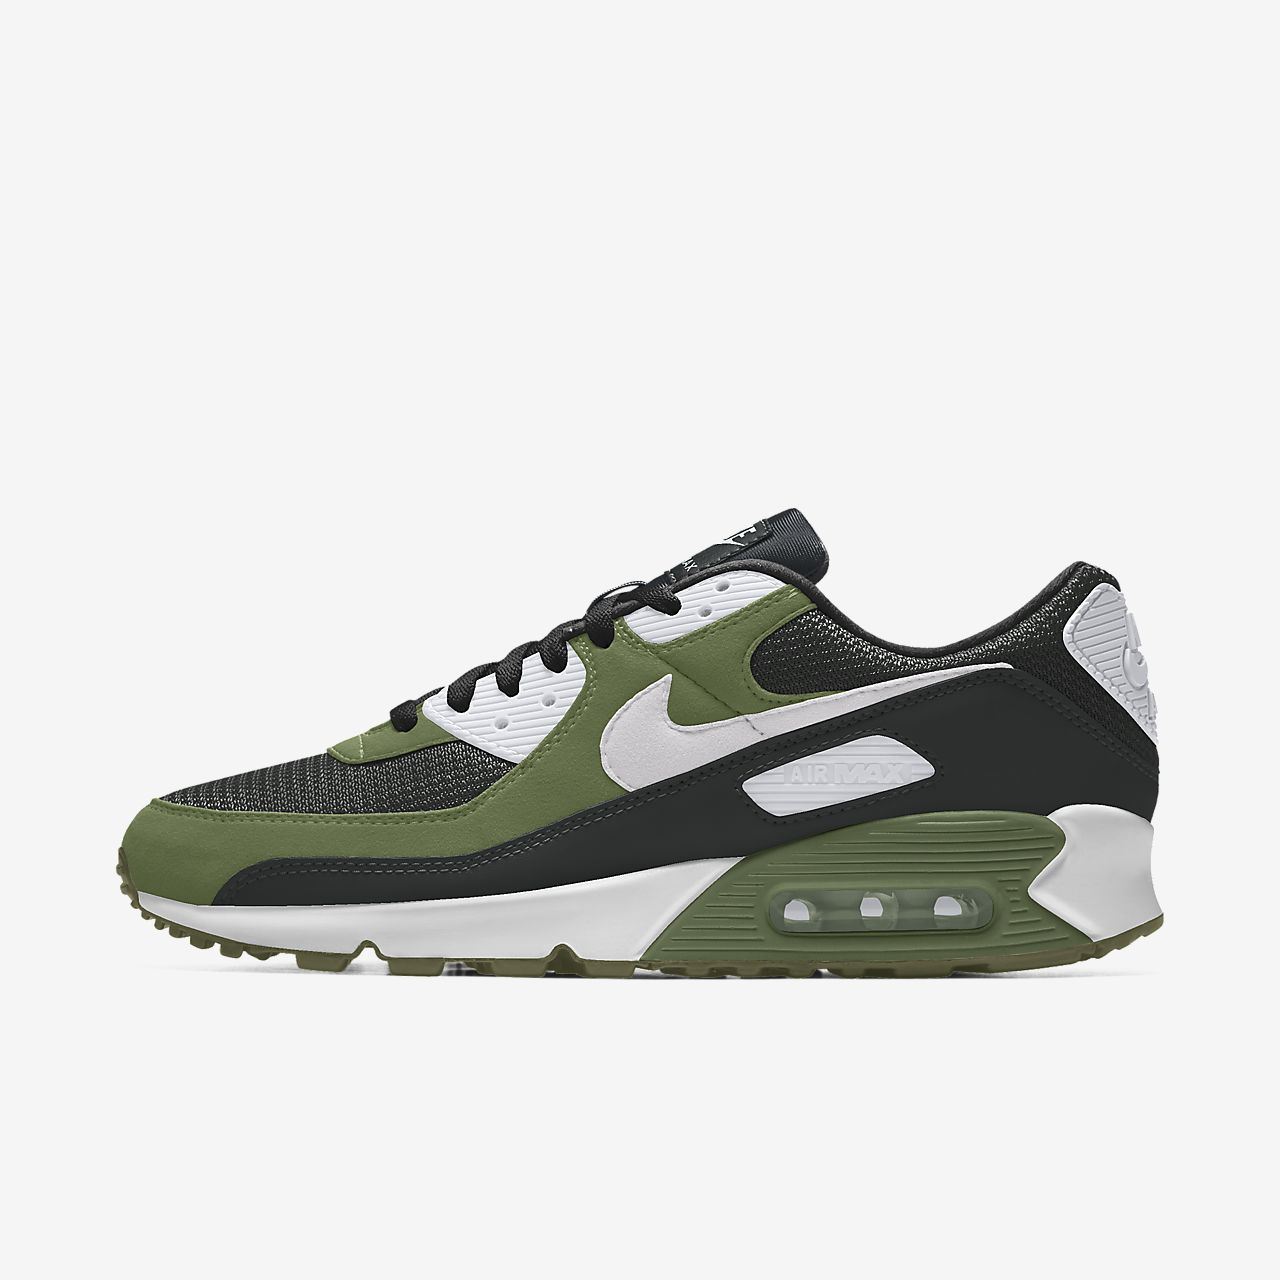 Specialdesignad sko Nike Air Max 90 By You för män